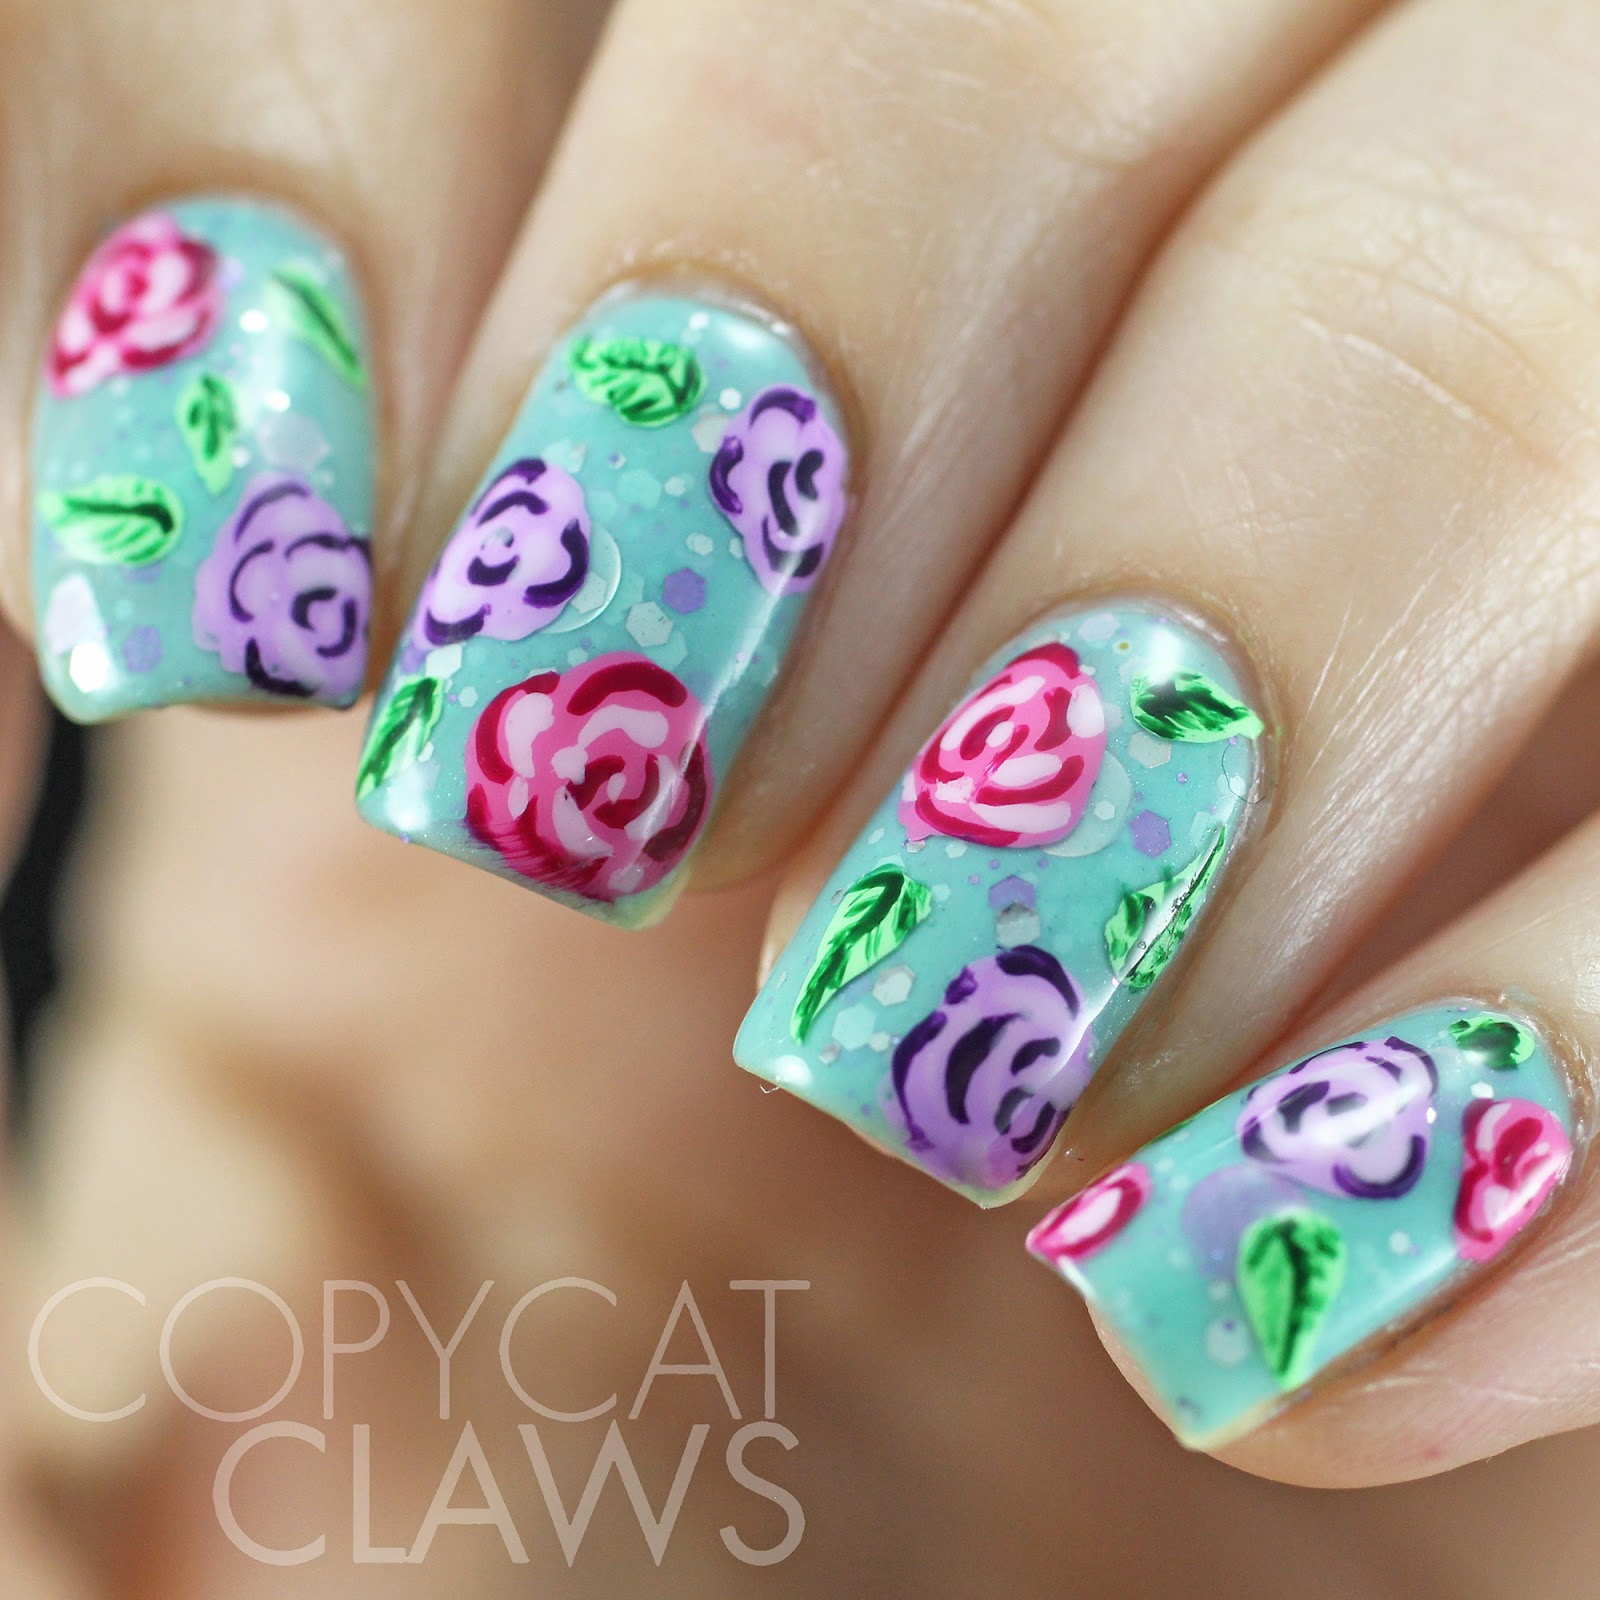 Copycat Claws: Pink and Lilac Rose Nail Art